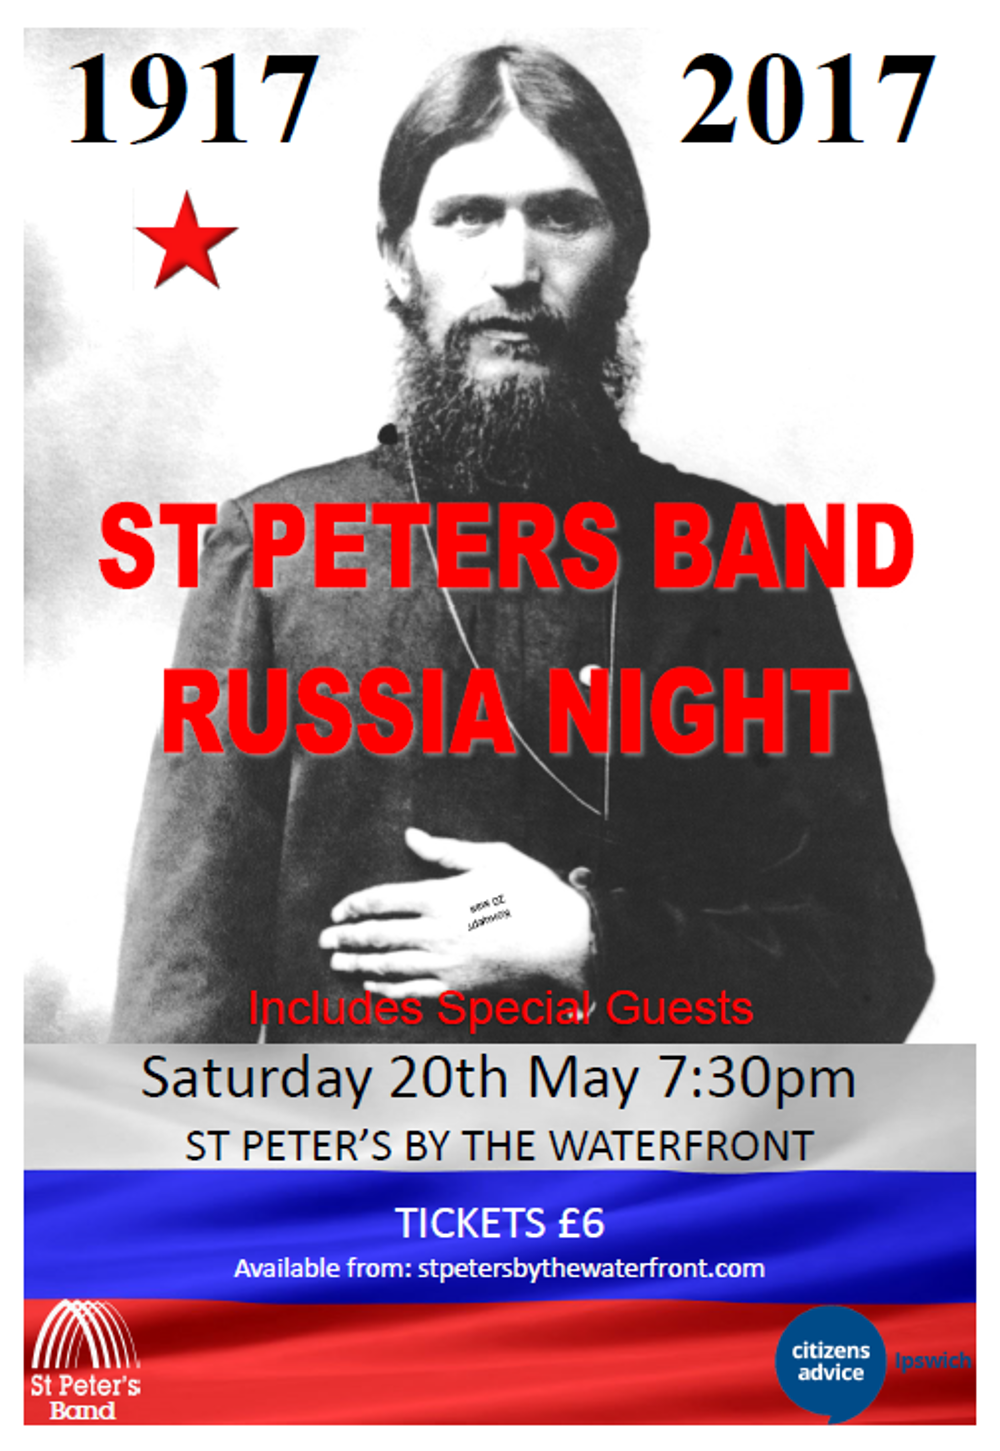 st peters band russian night